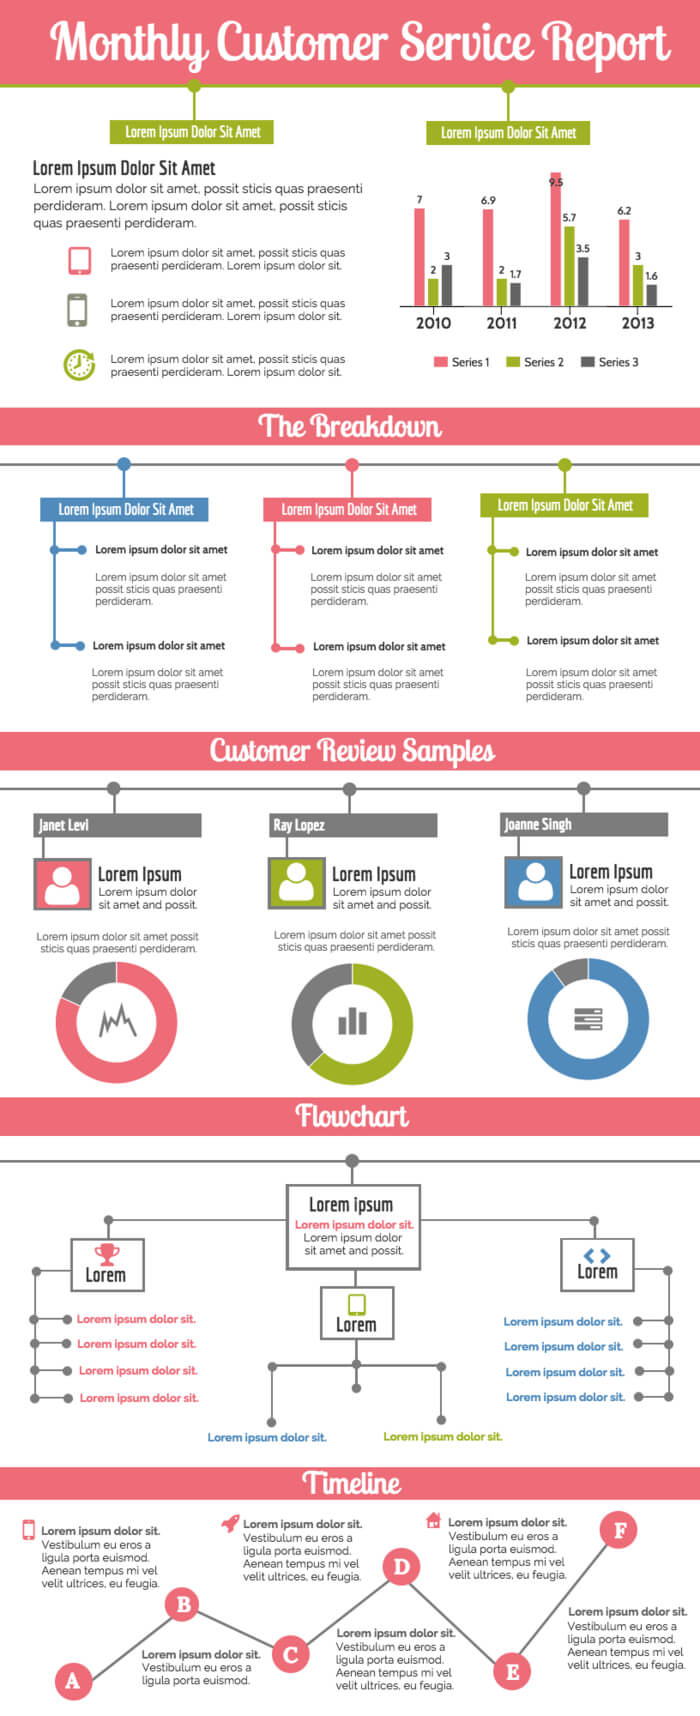 Monthly Customer Service Report Template - Venngage inside Technical Service Report Template